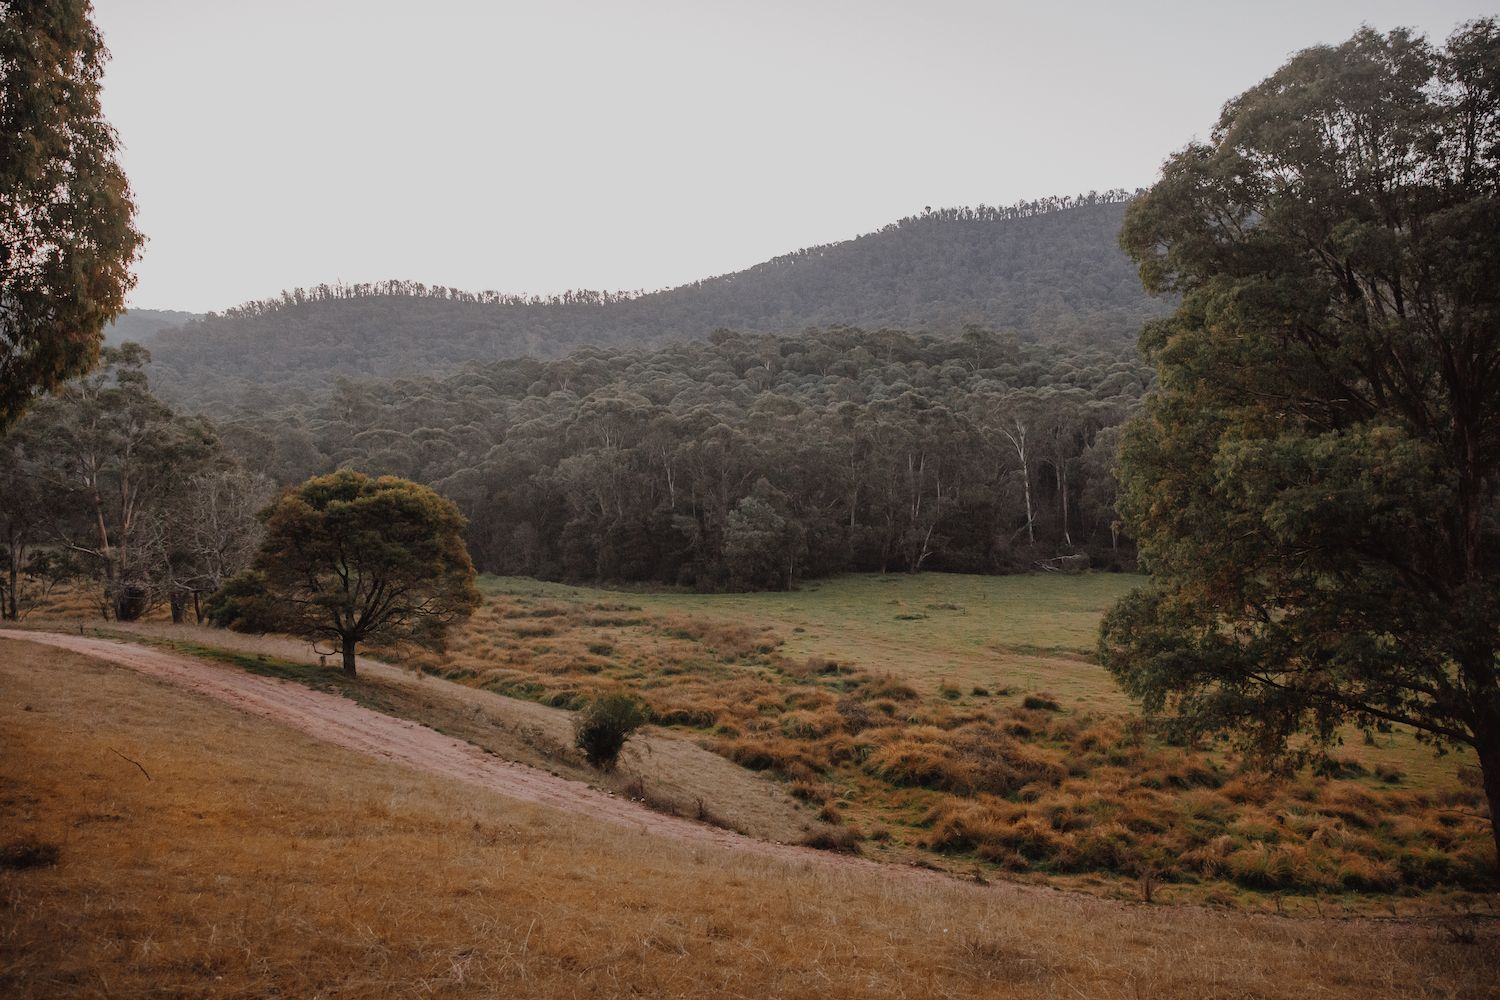 Landscape photo of Nariel Valley property with rolling hills and forest in background